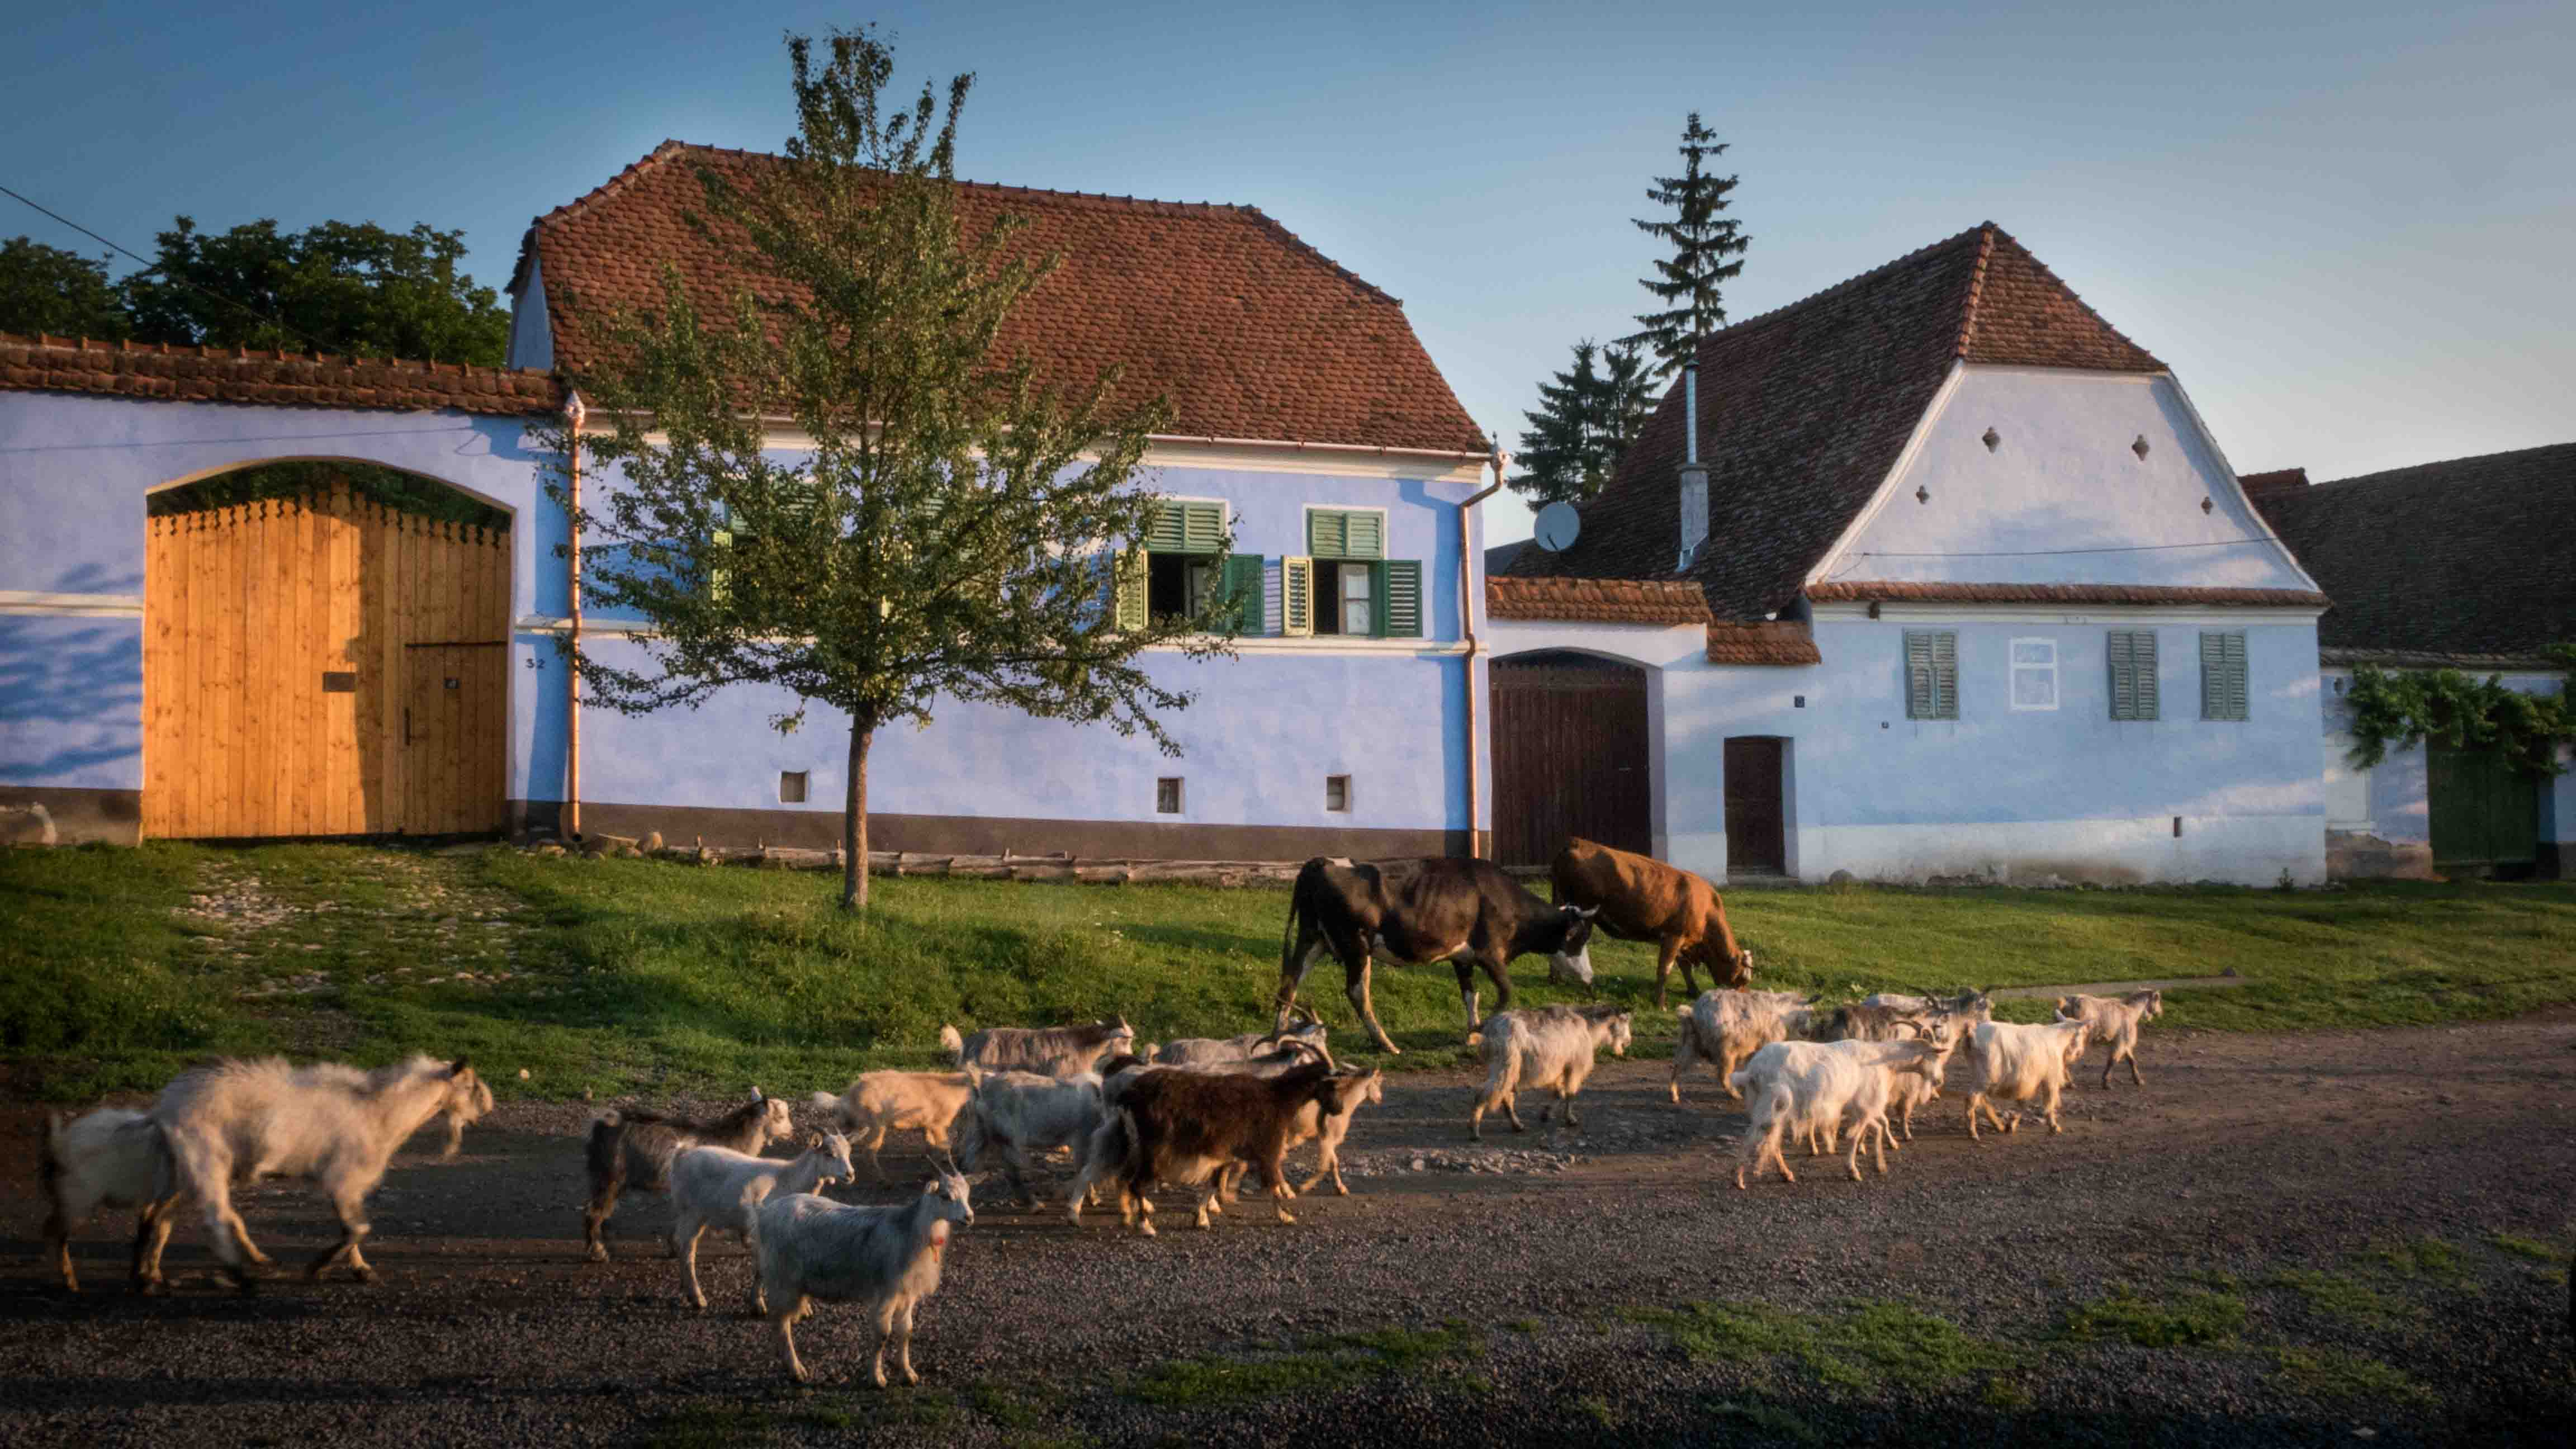 Spring morning in Viscri village - animals going to the pasture